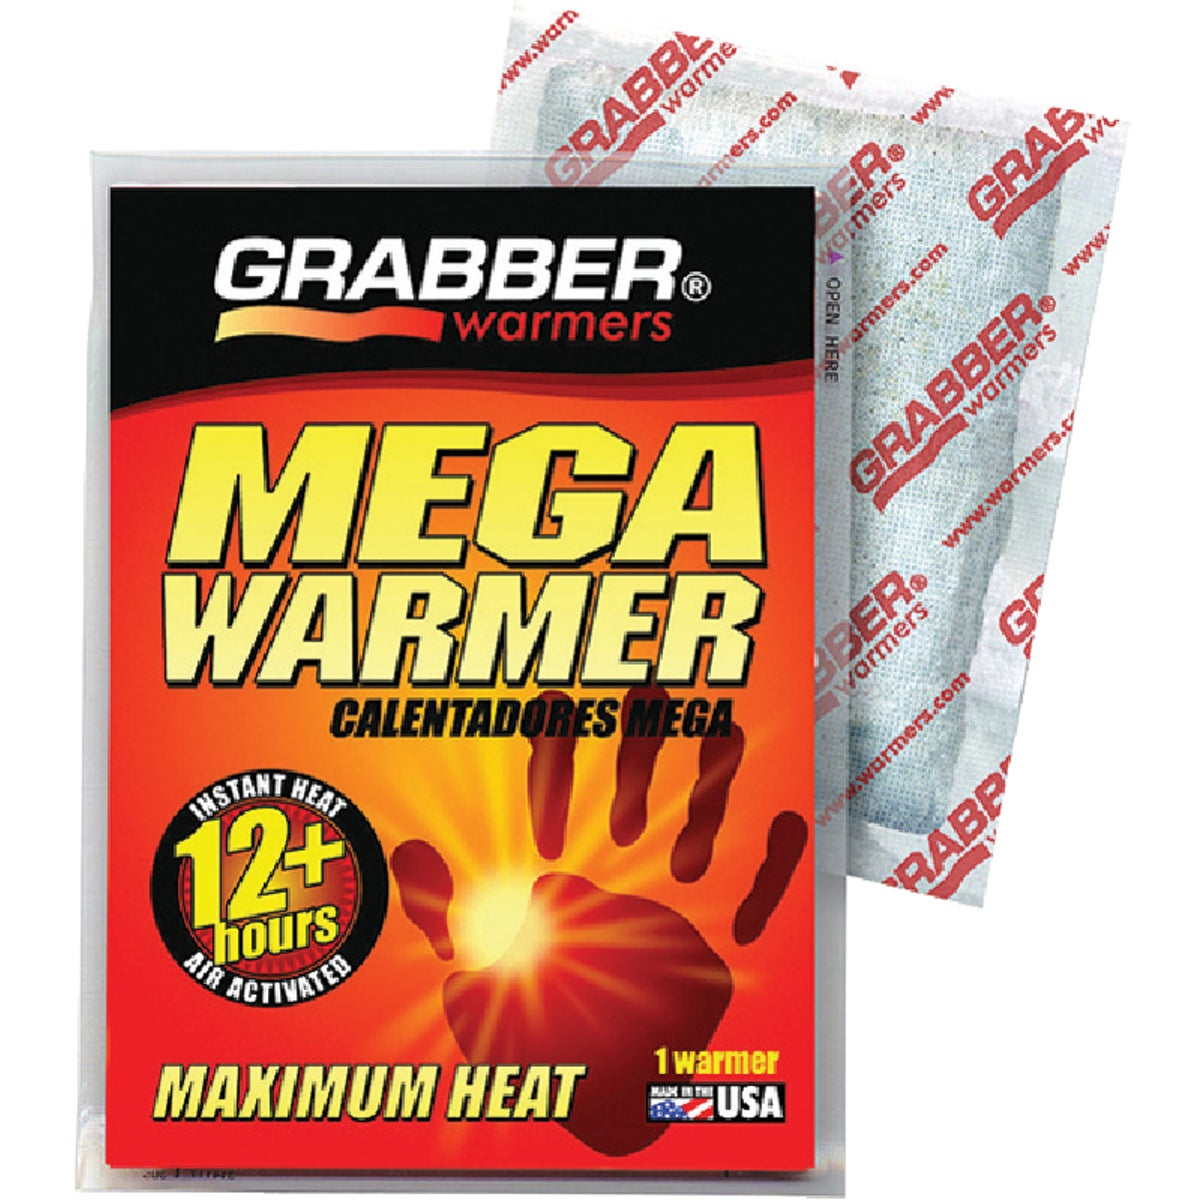 12+ HOUR WARM PACK - MWES by Grabber Performance